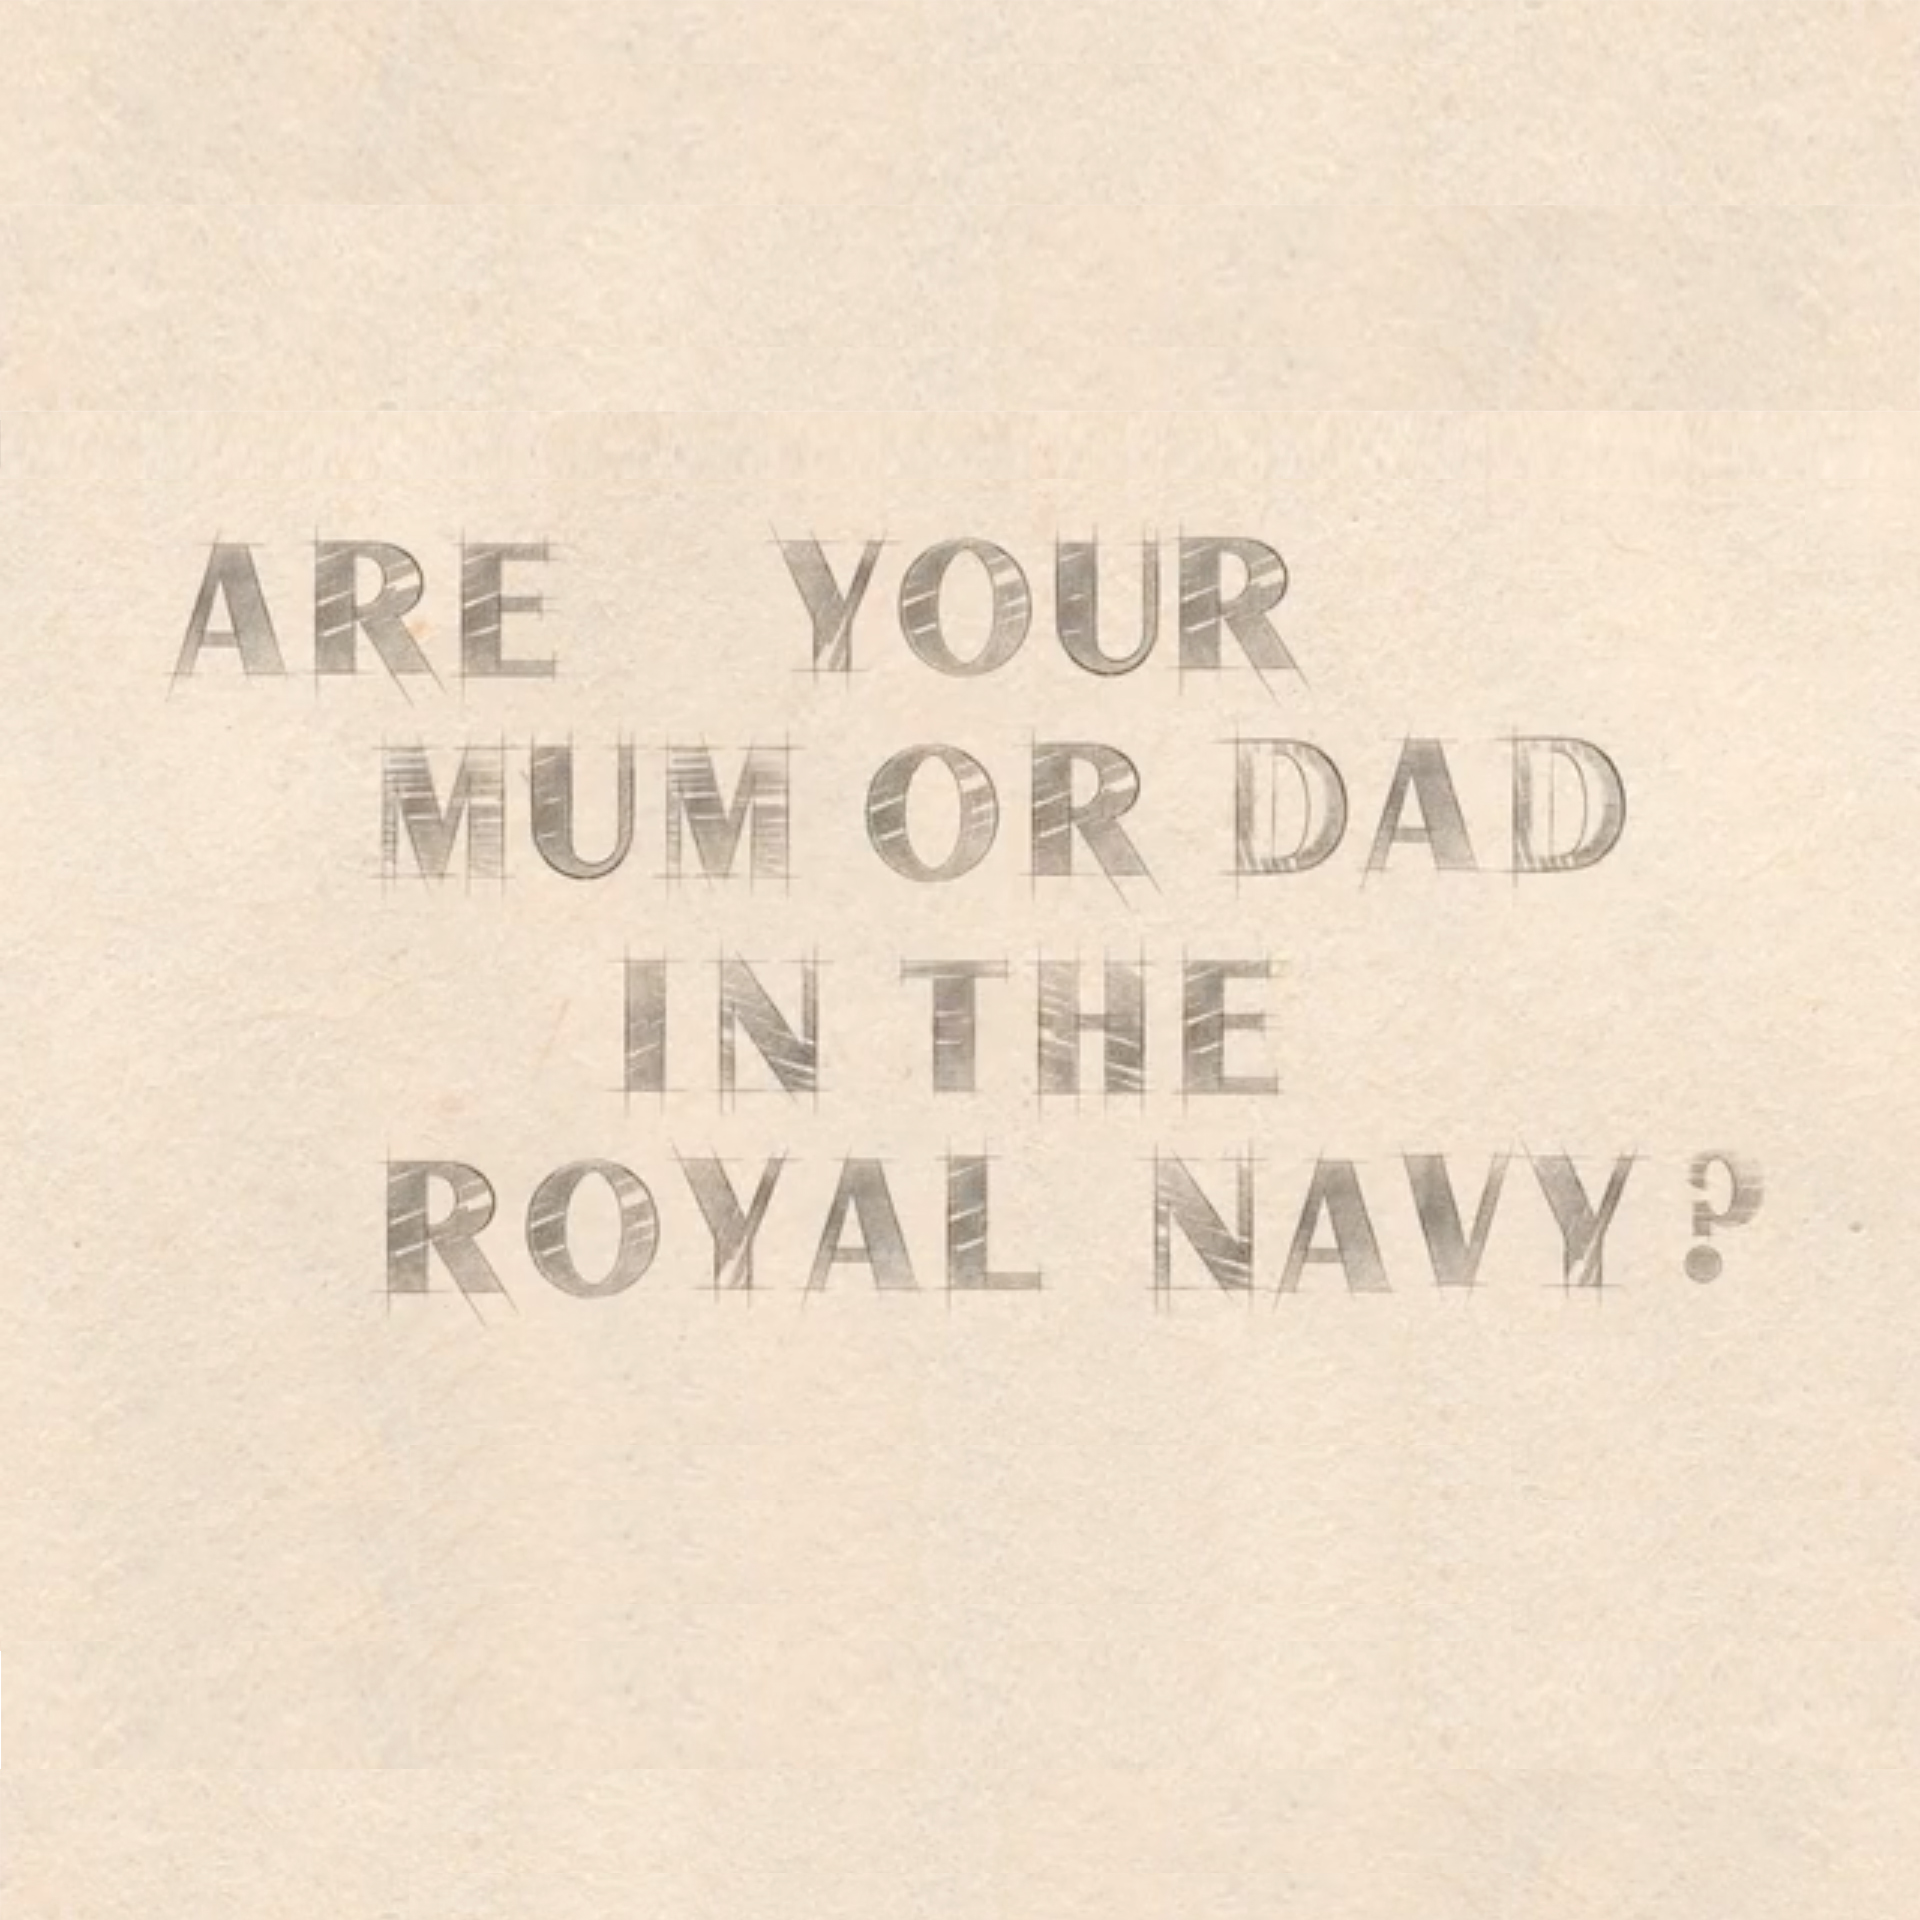 Are your mum or dad in the Royal Navy? - A still from the recruitment video